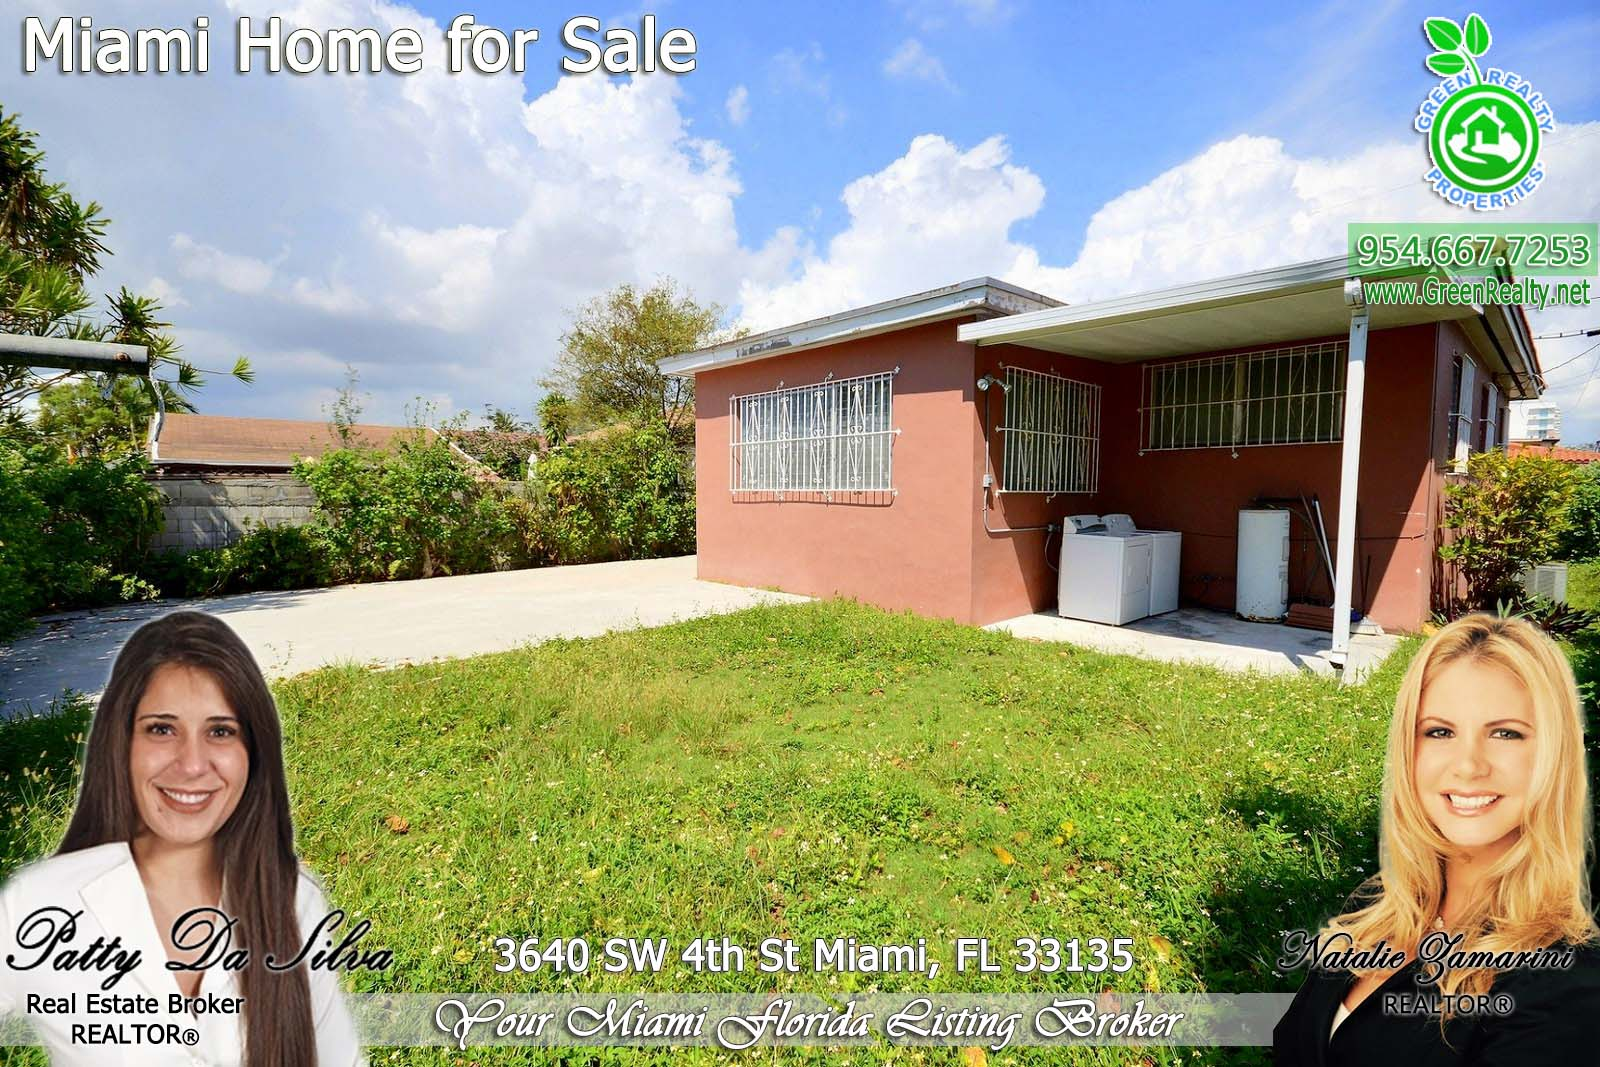 Homes For Sale in Miami